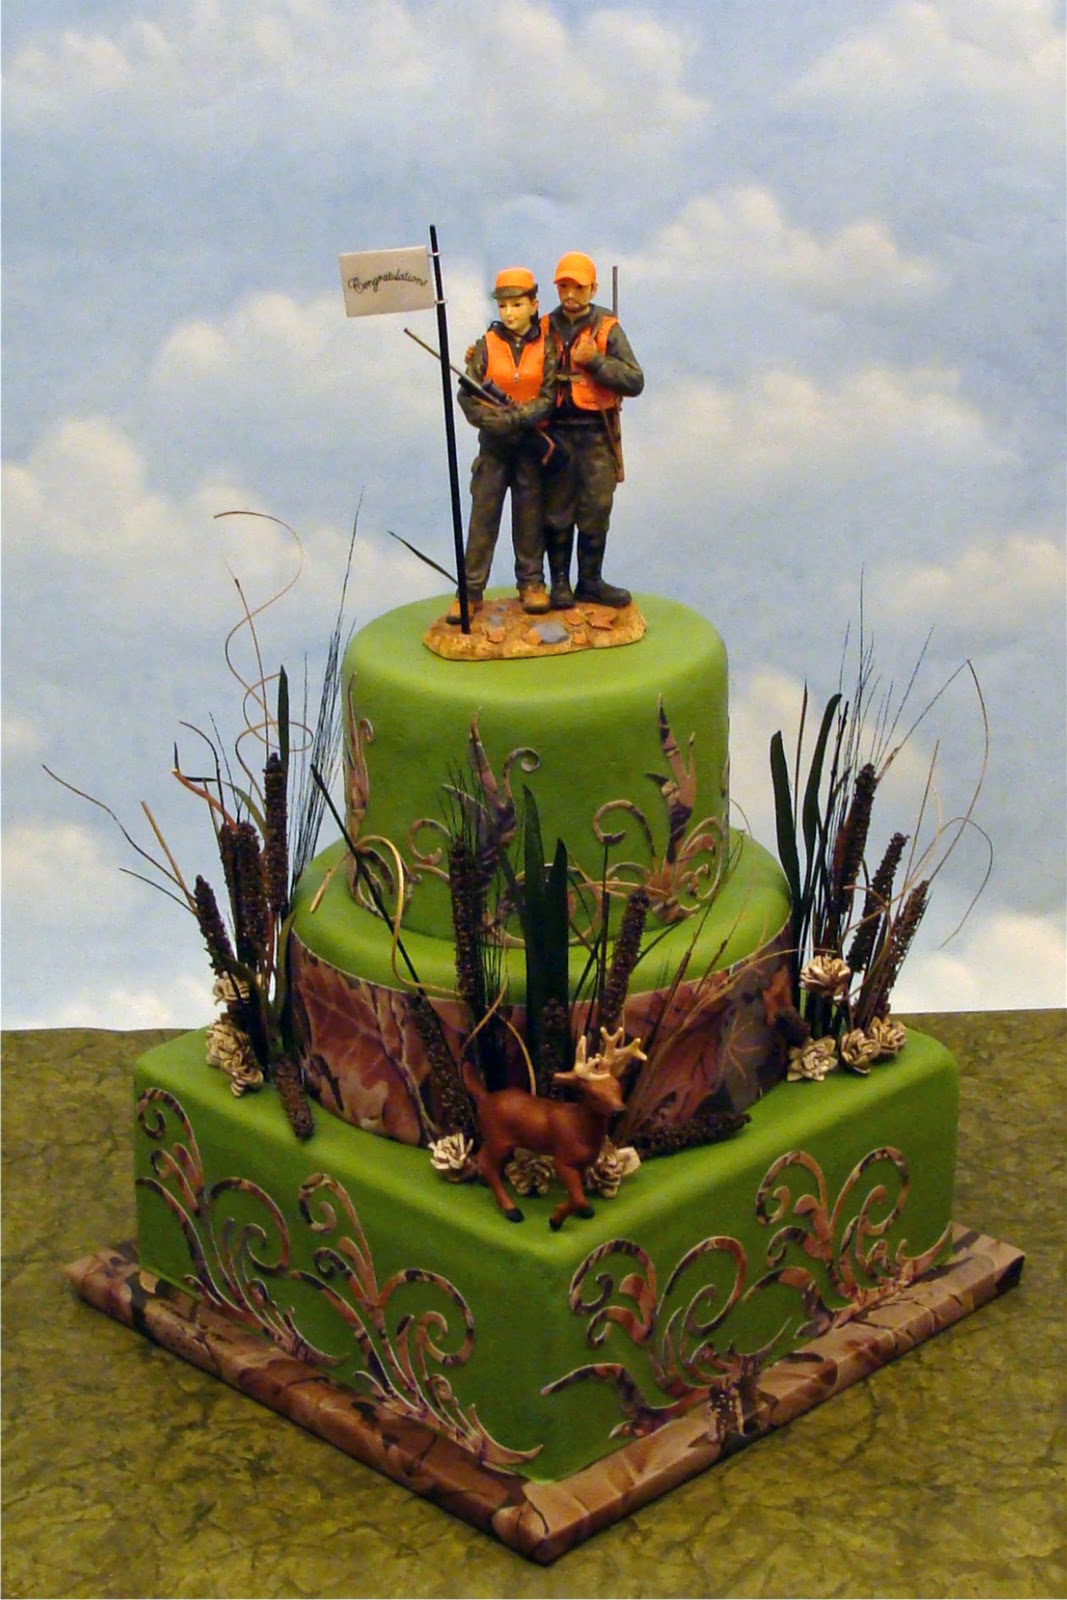 Creative Designs For Cakes Cake for Hunters